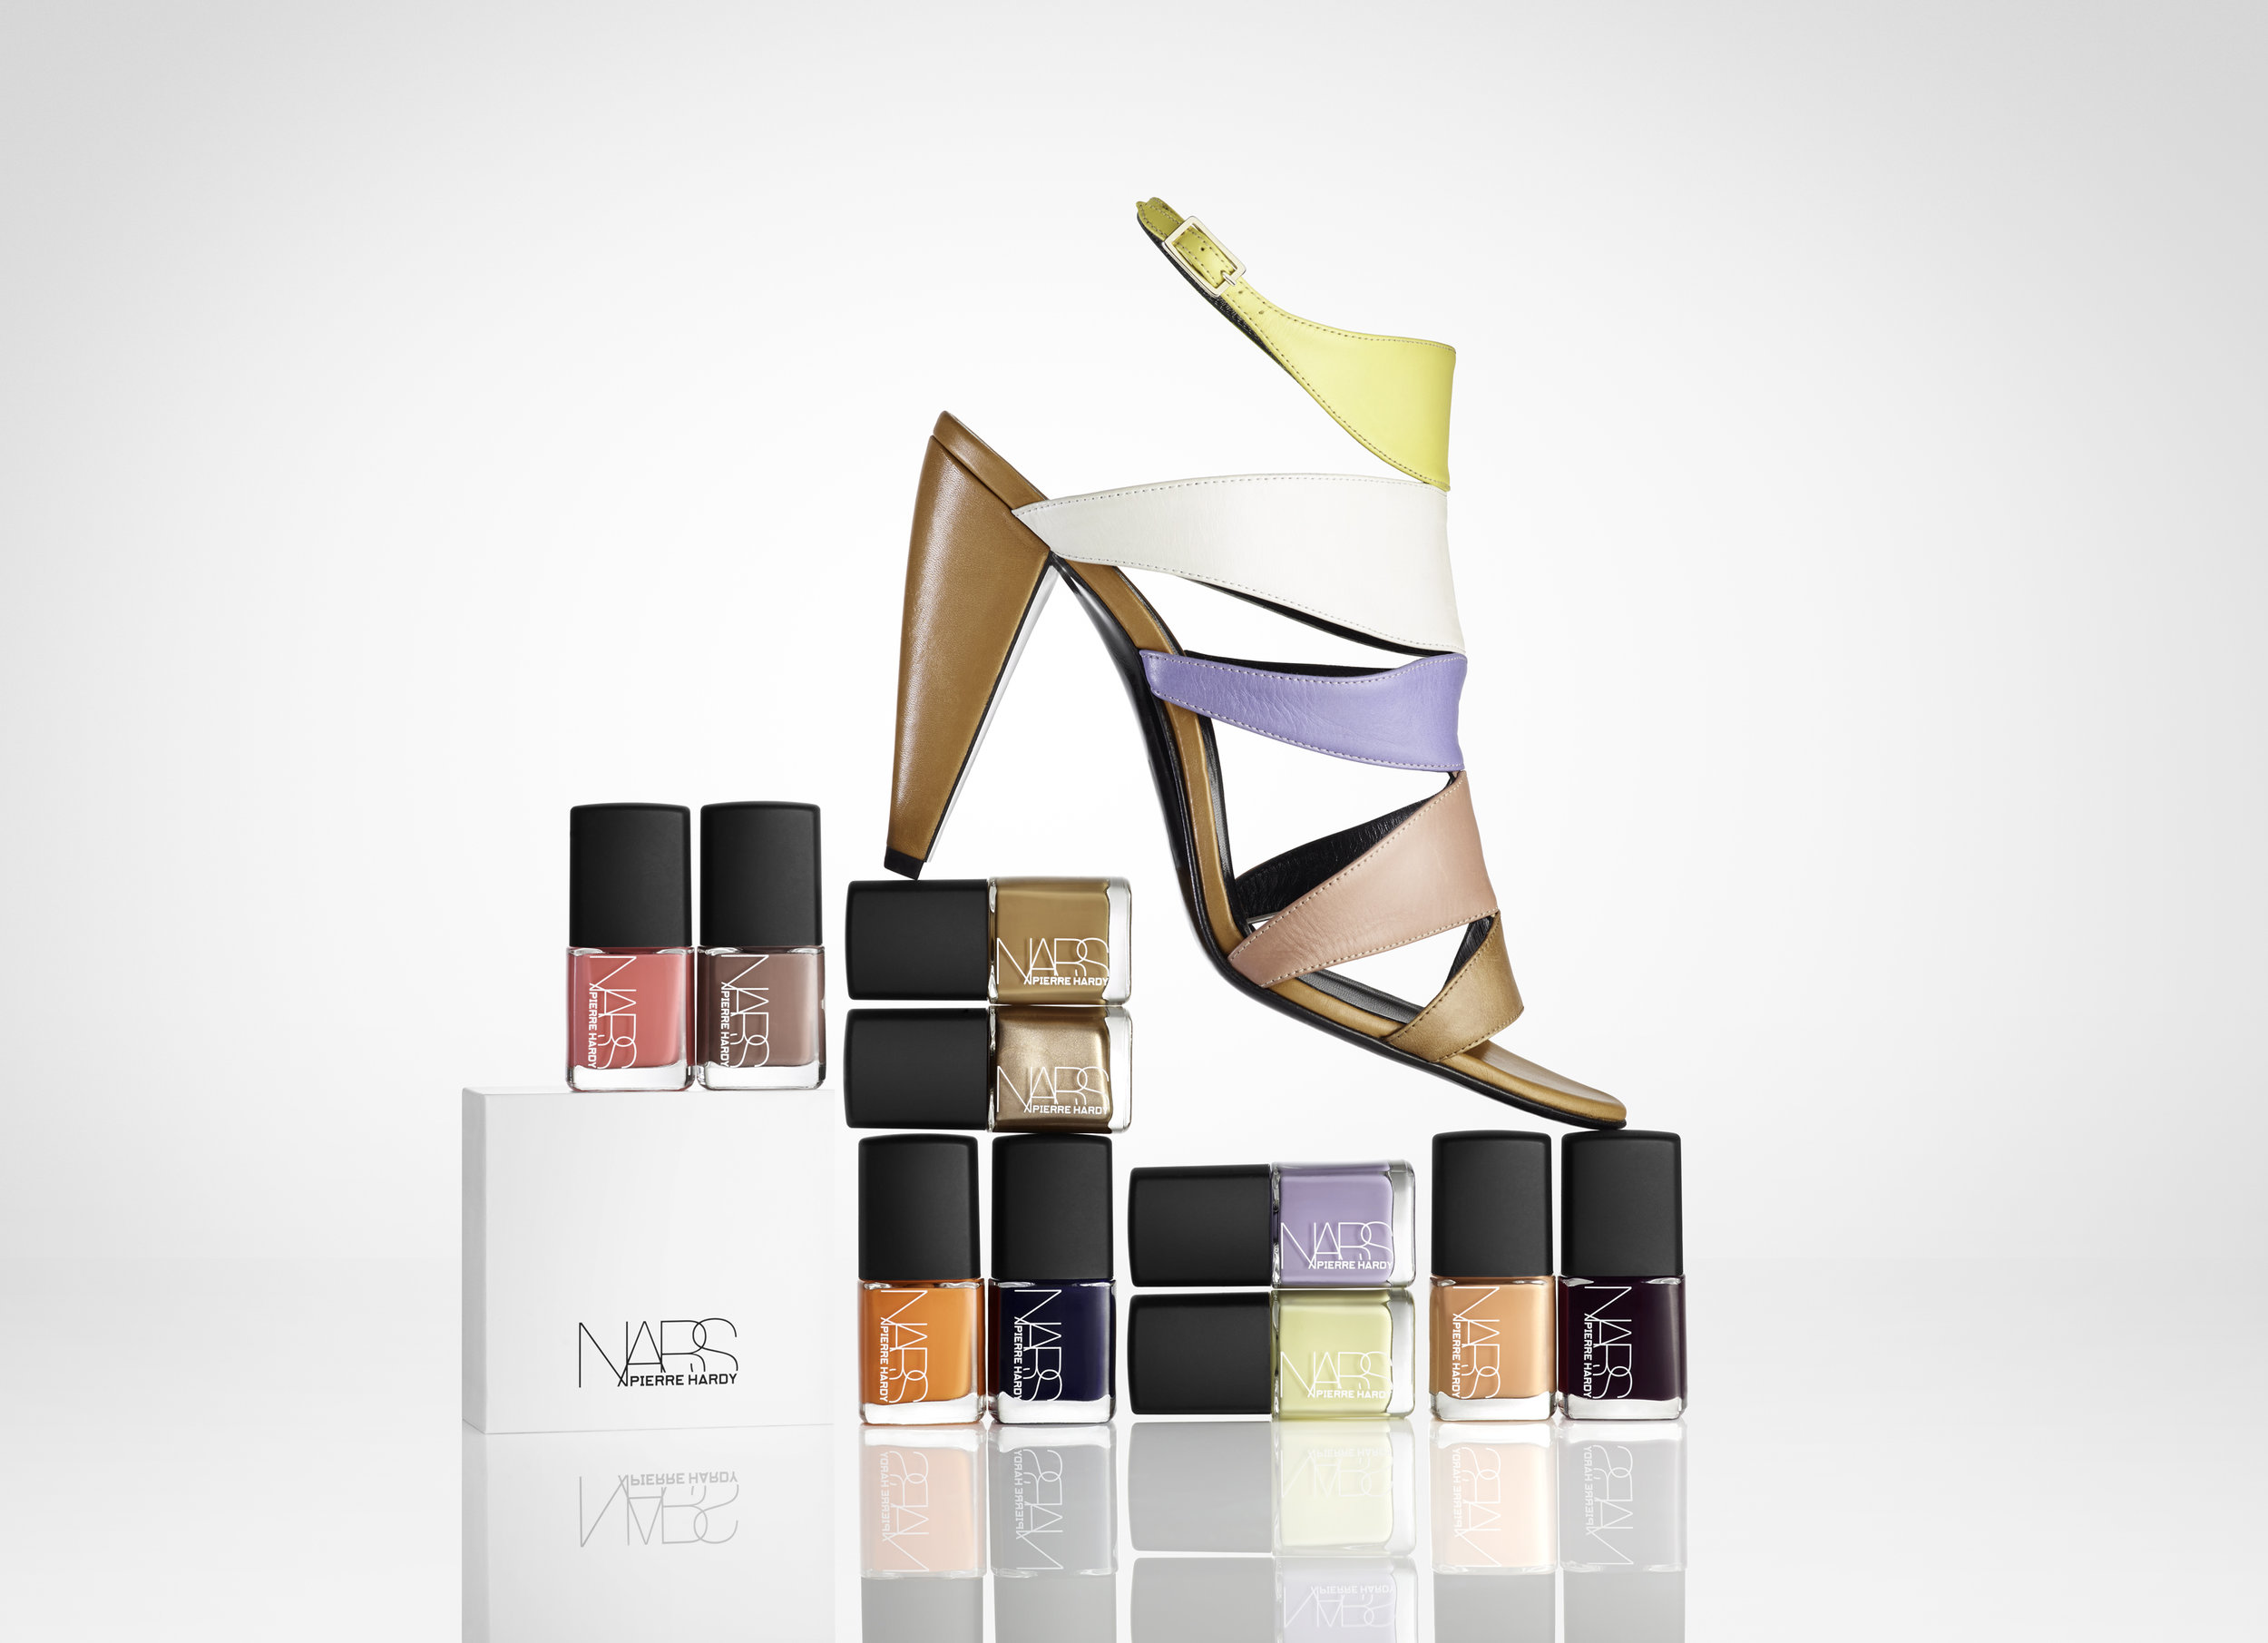 NARS-Pierre-Hardy-campaign-image-lo-res.jpg